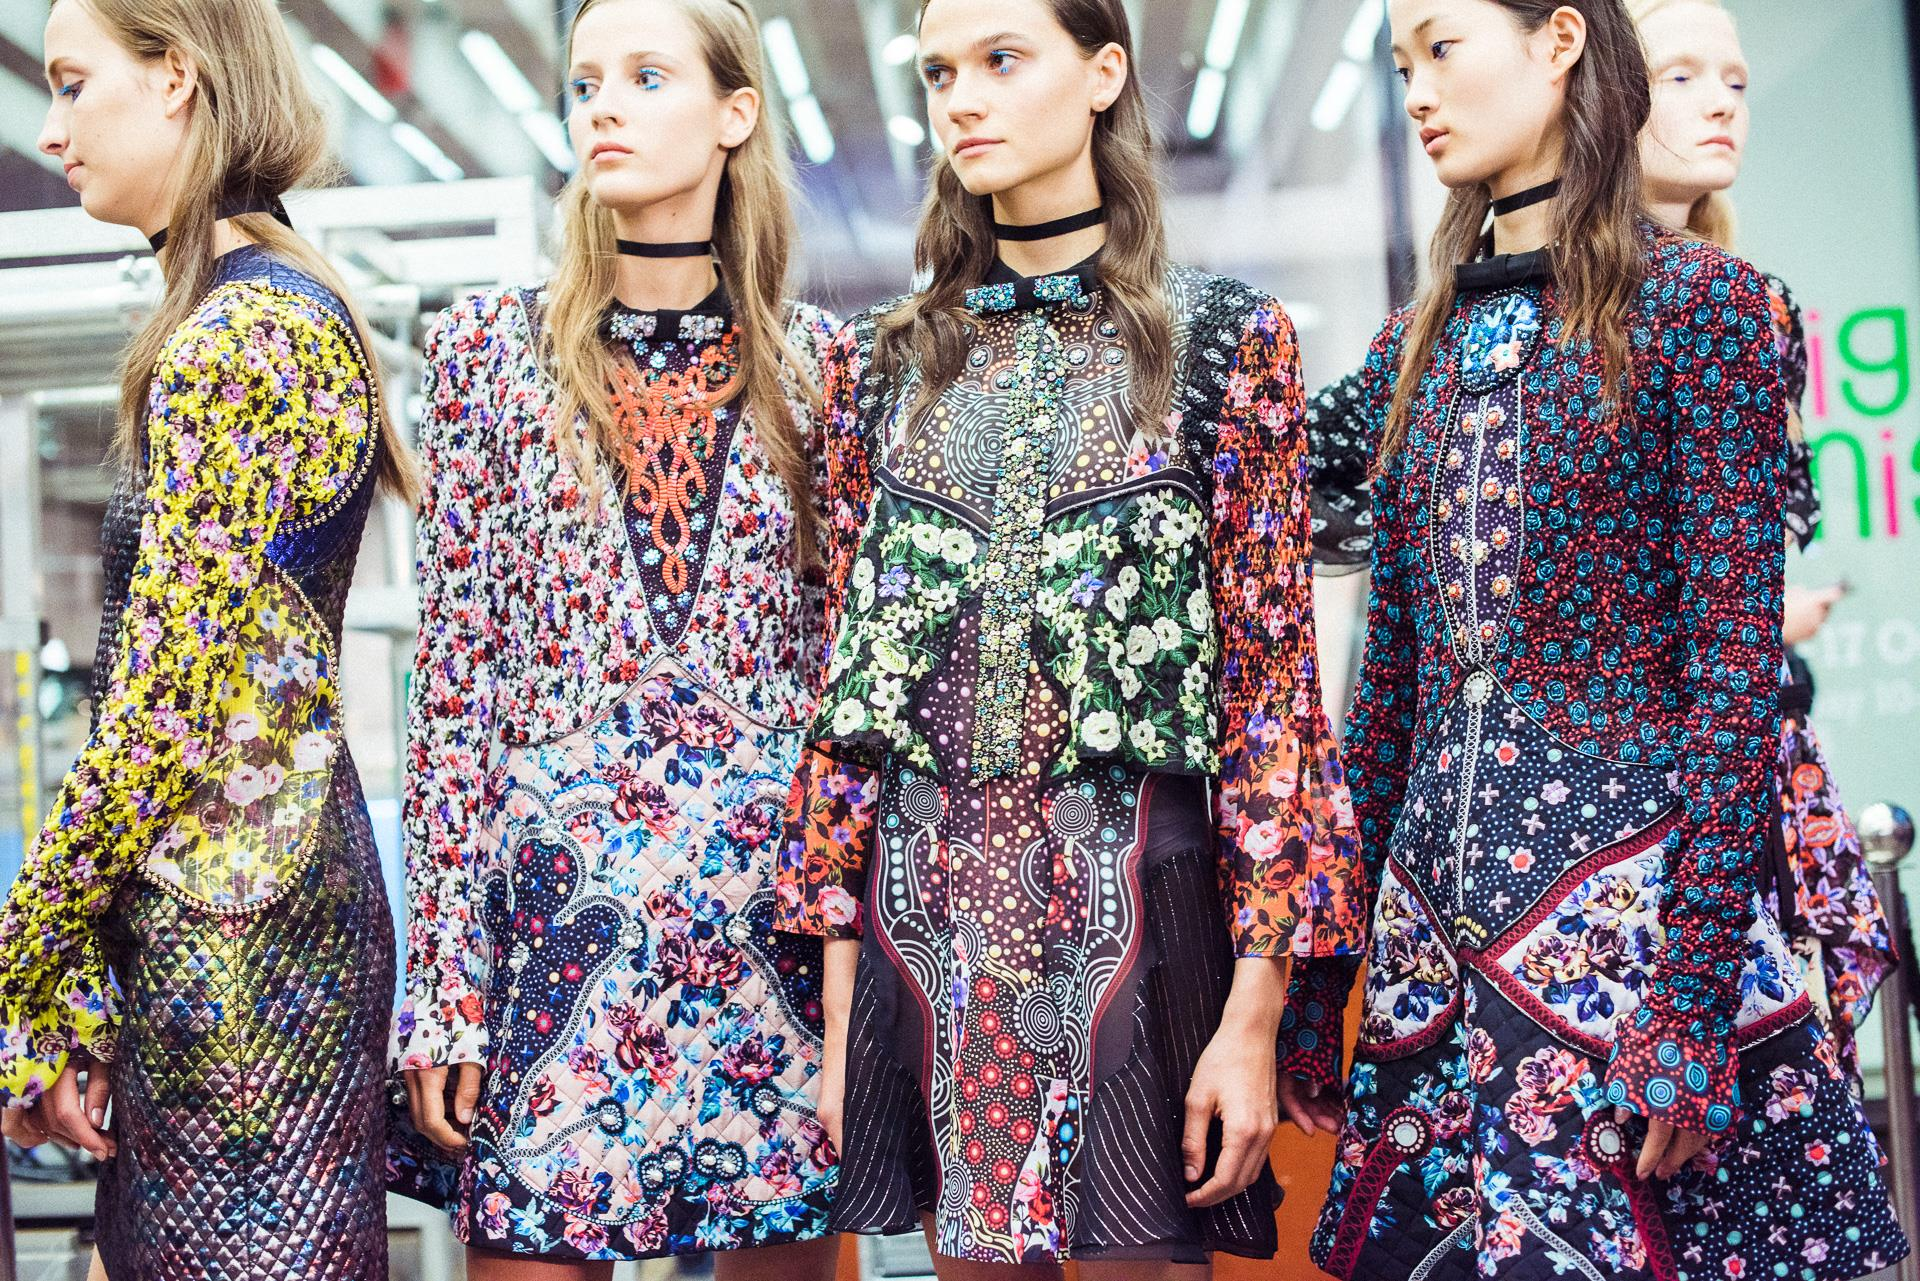 Top Five Trends From London Fashion Week